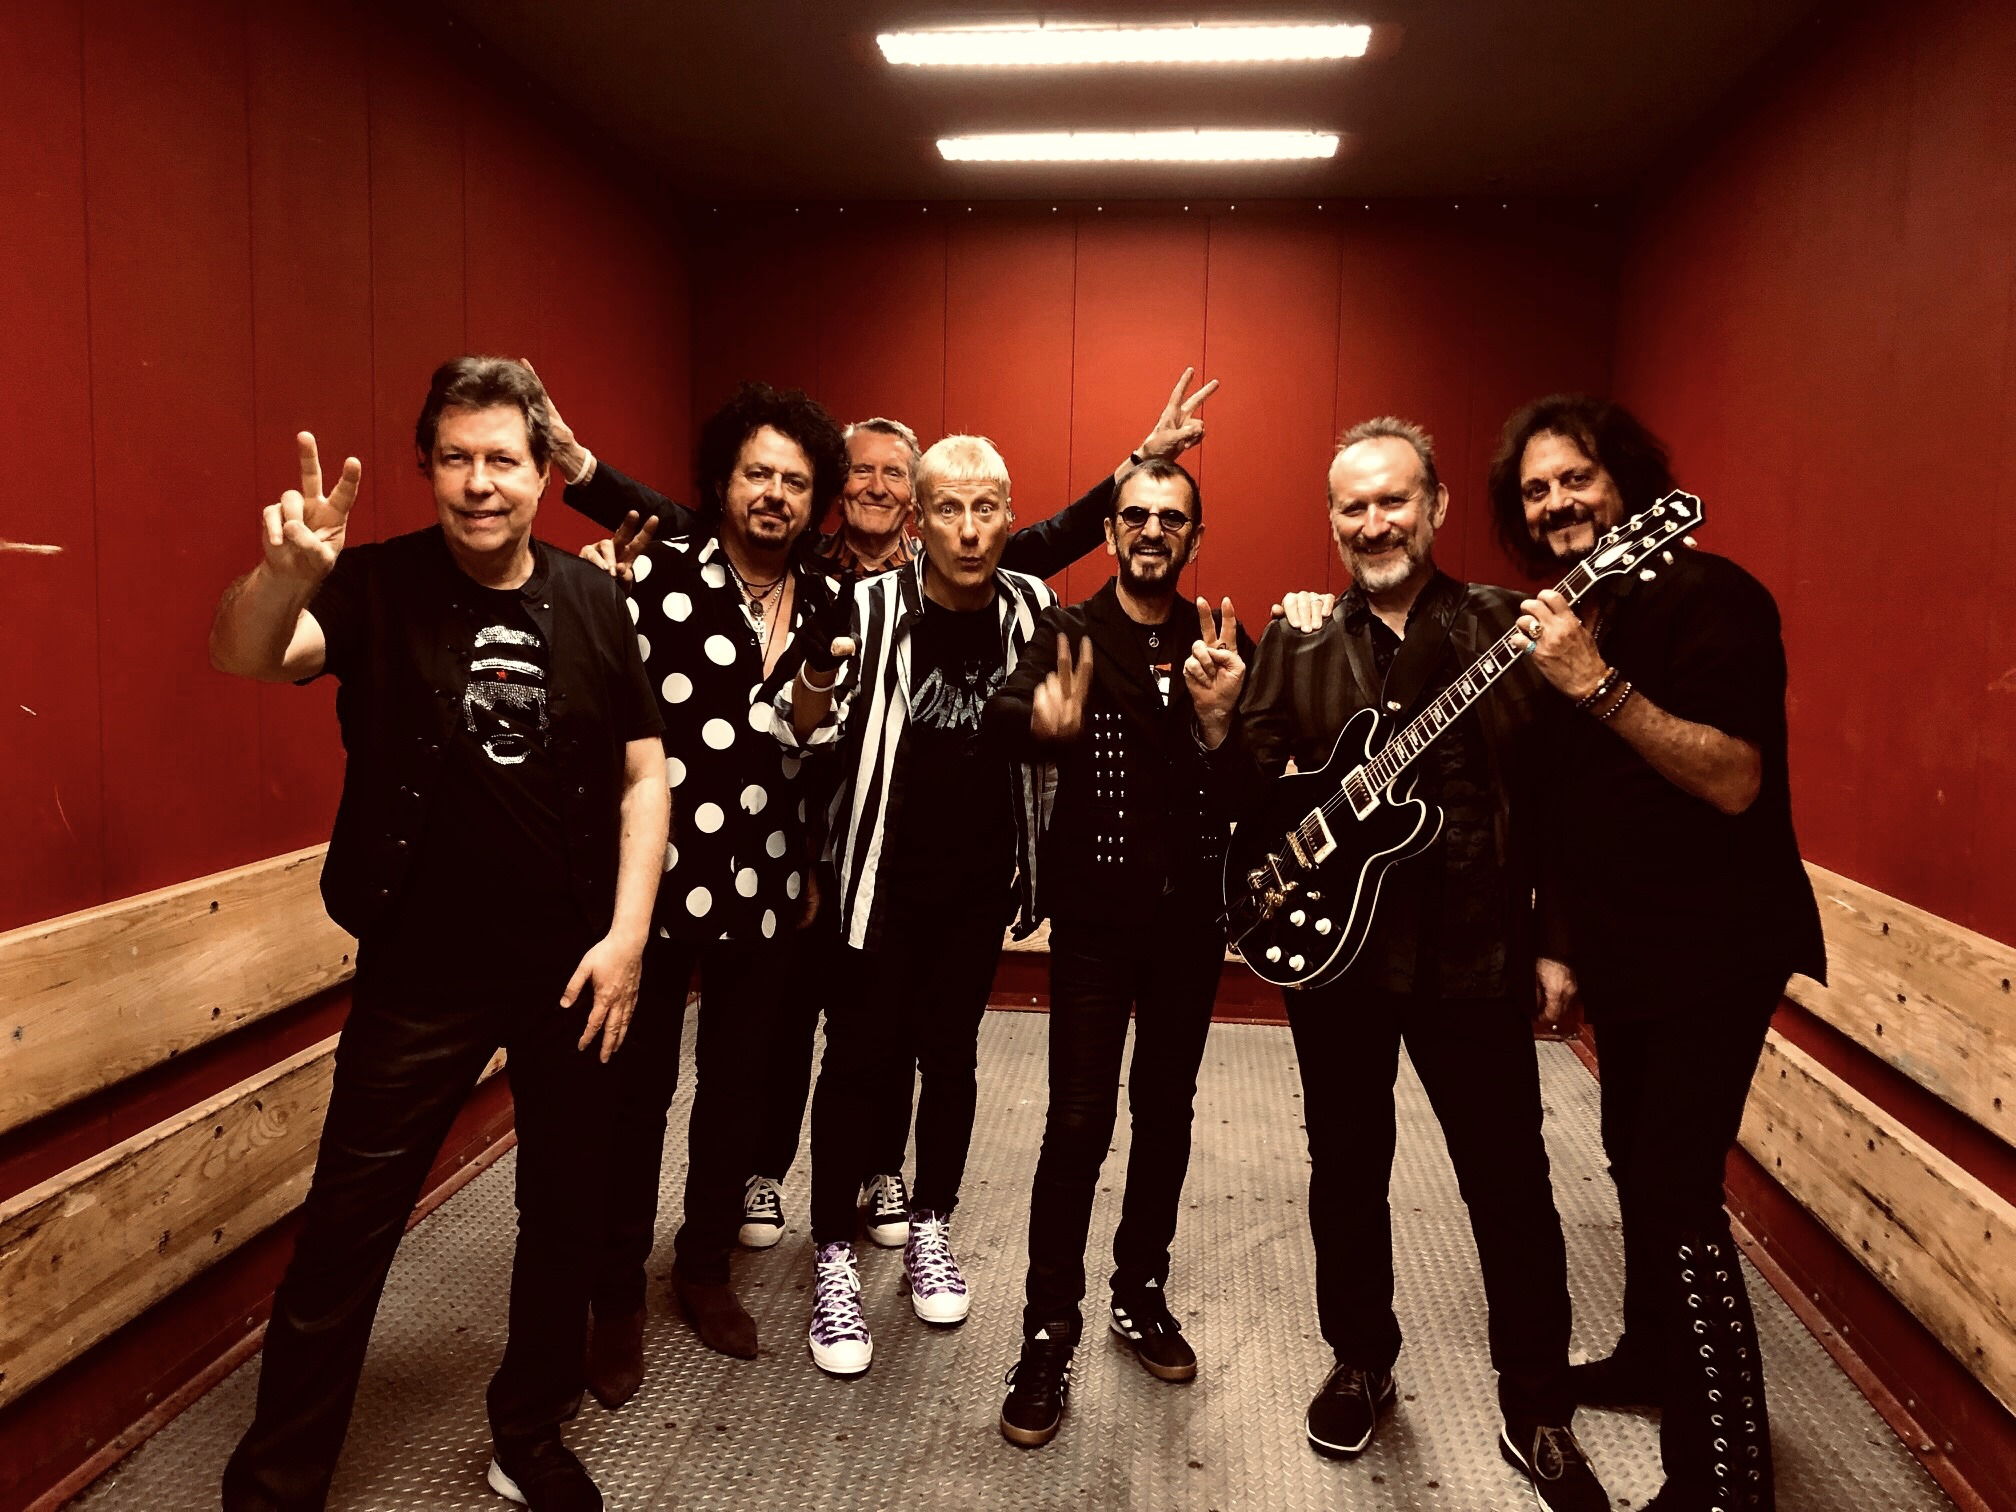 Ringo Starr and His All-Starr Band Tour 2019 : Pictures from the Road